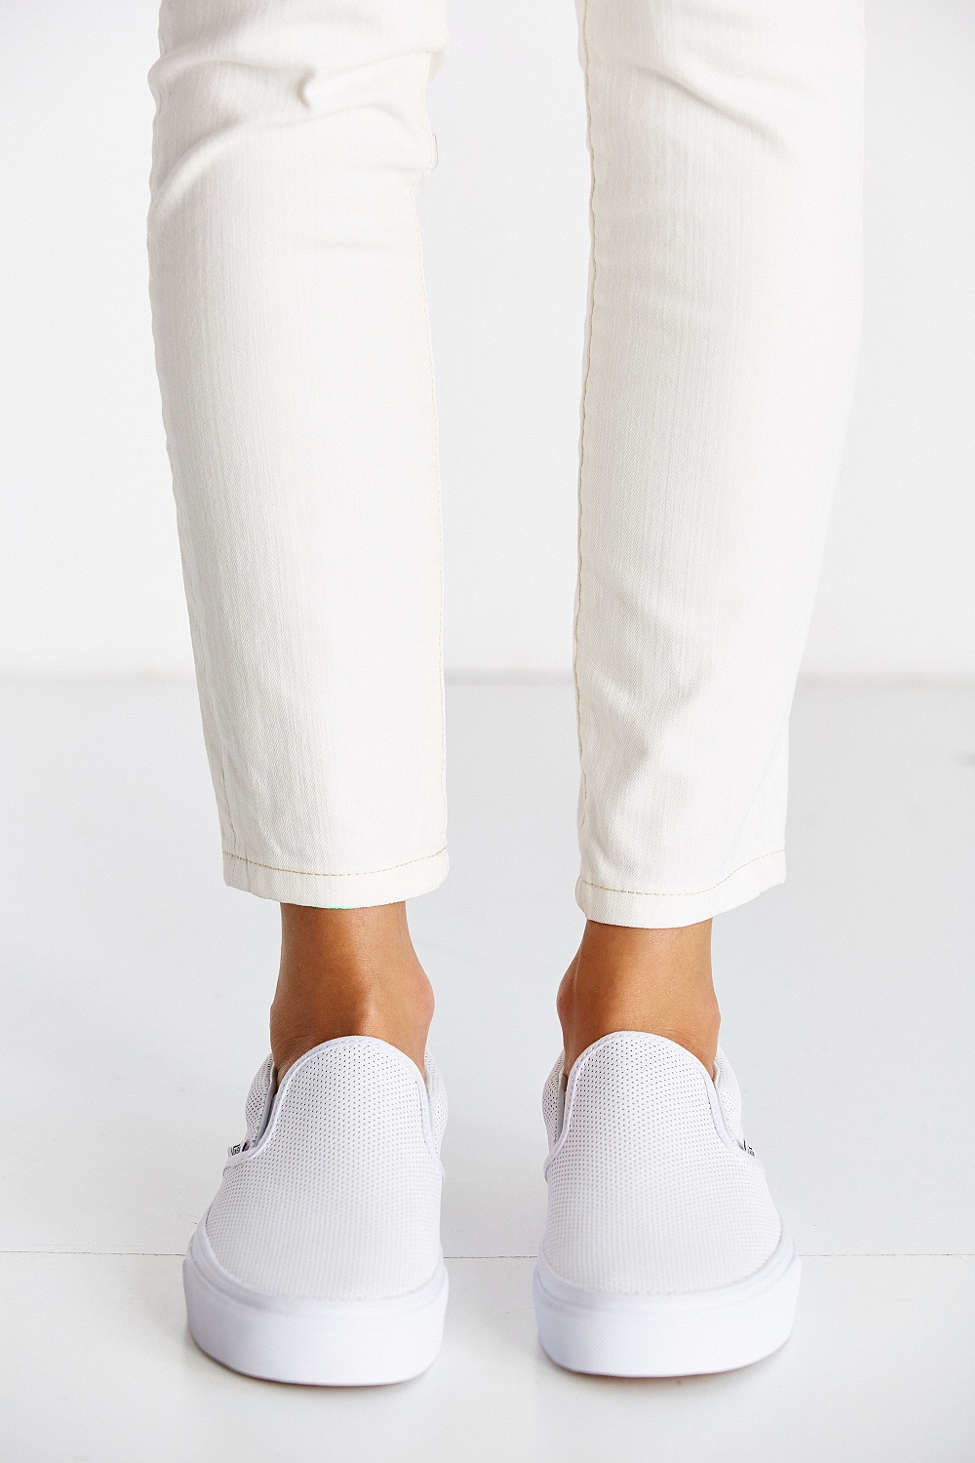 4030e215dc1 Lyst - Vans Perforated Leather Slip-on Sneaker in White